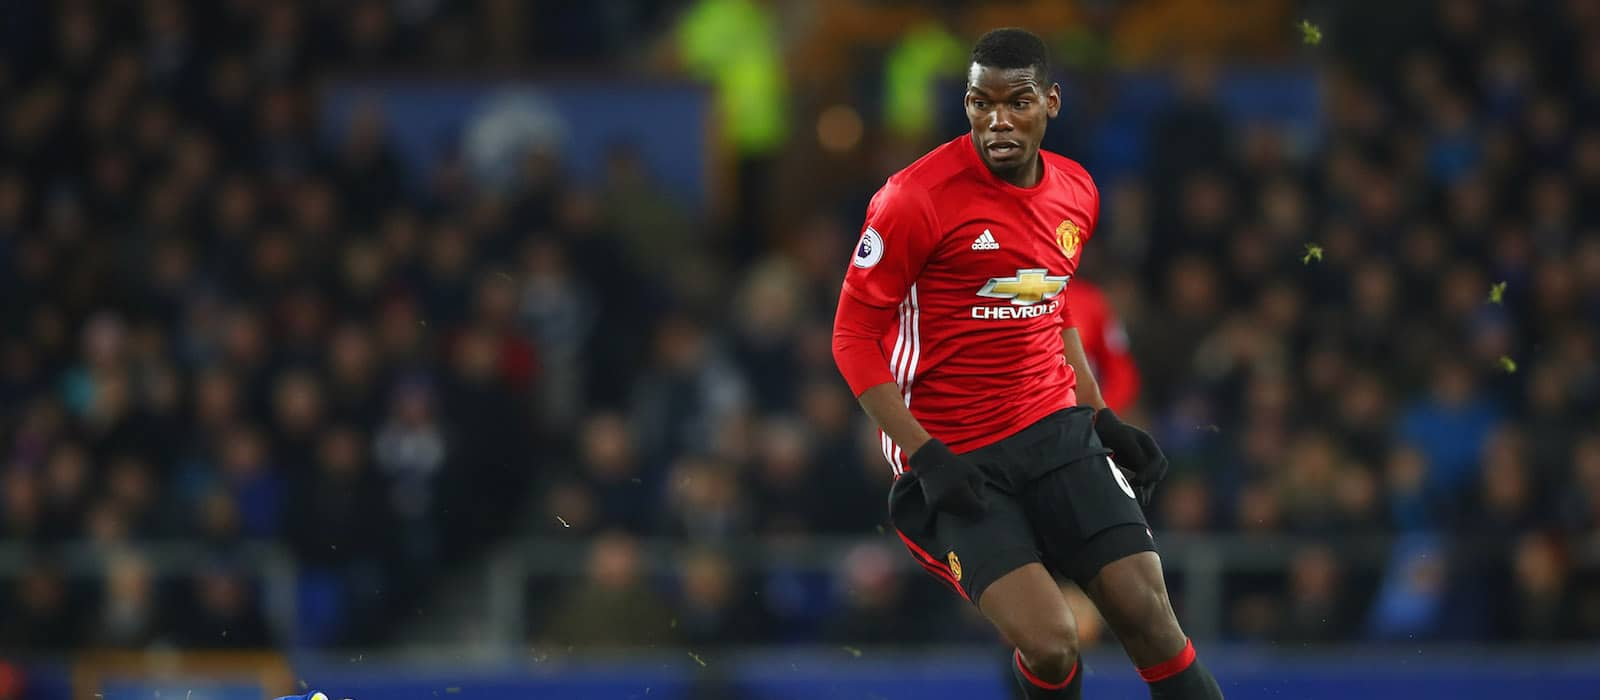 Manchester United fans react to Paul Pogba's performance and injury against FC Rostov